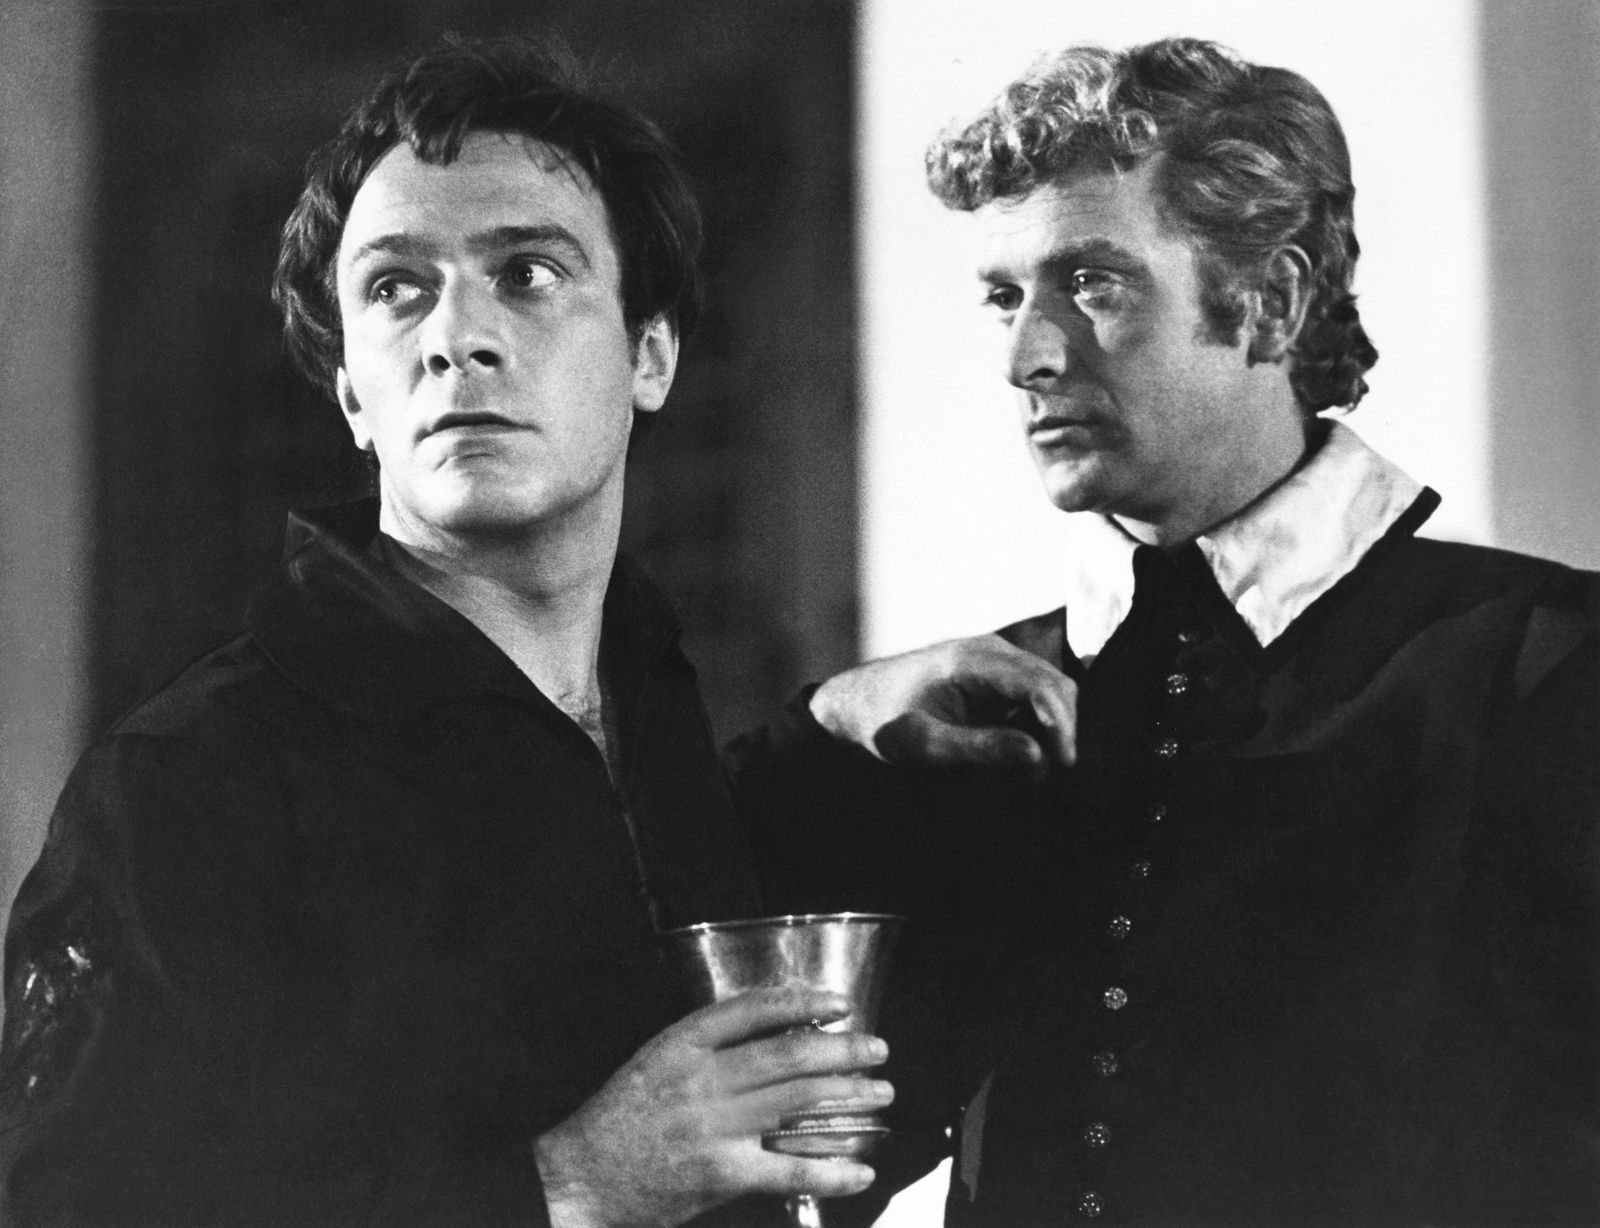 HAMLET AT ELSINORE, from left: Christopher Plummer, Michael Caine, 1964 Courtesy Everett Collection !ACHTUNG AUFNAHMEDAT